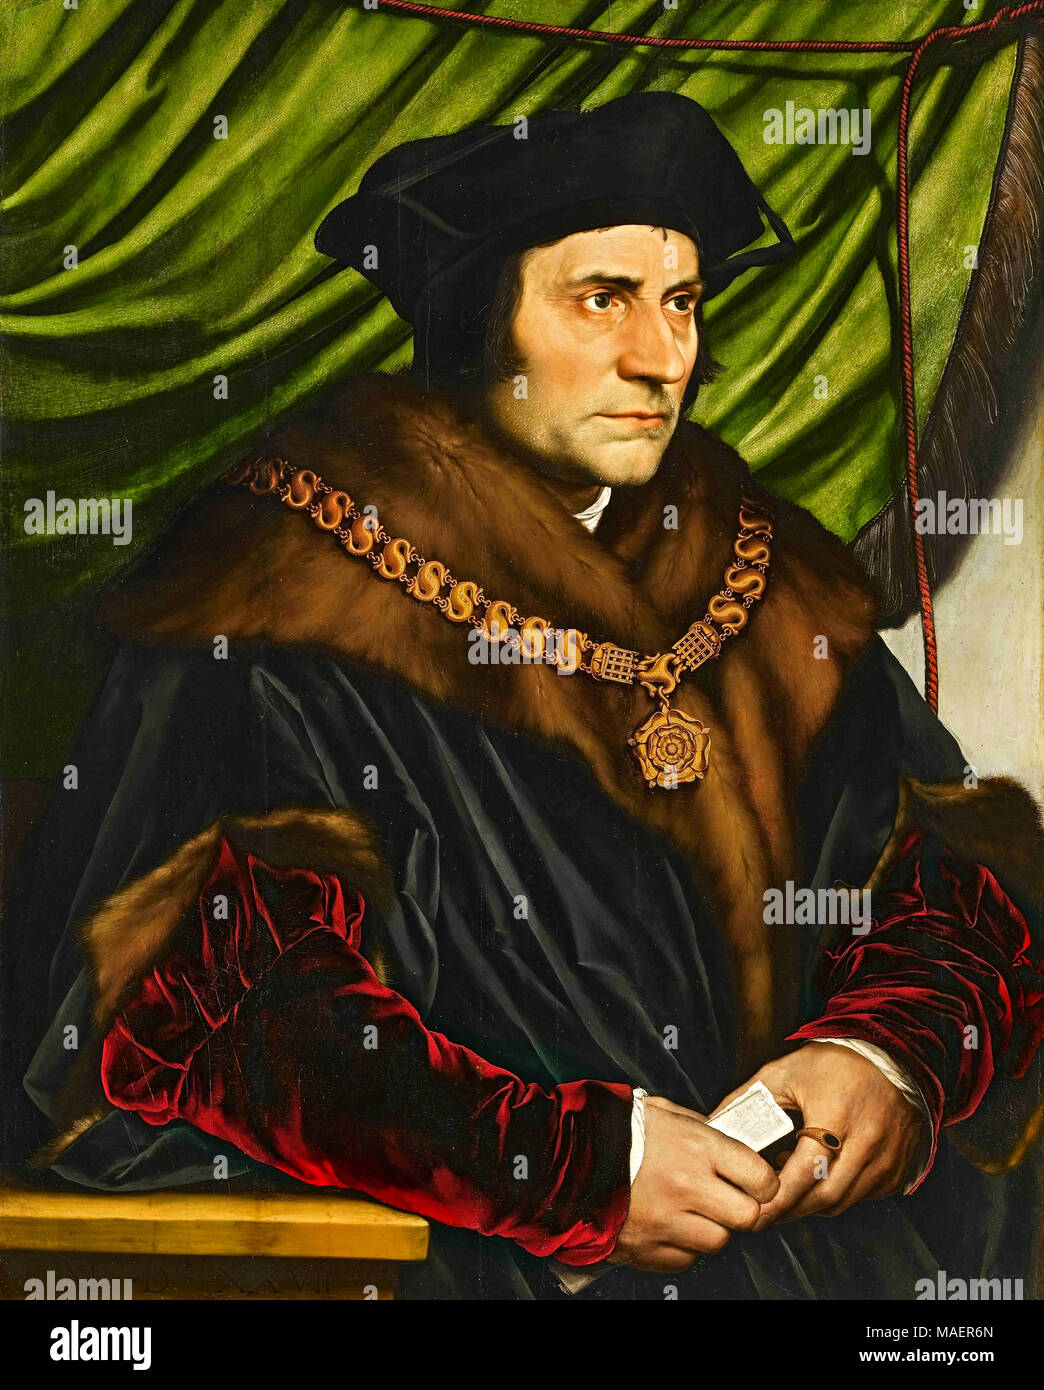 Thomas More (1778-1535) Renaissance humanist author best remembered for his satirical book 'Utopia'. - Stock Image